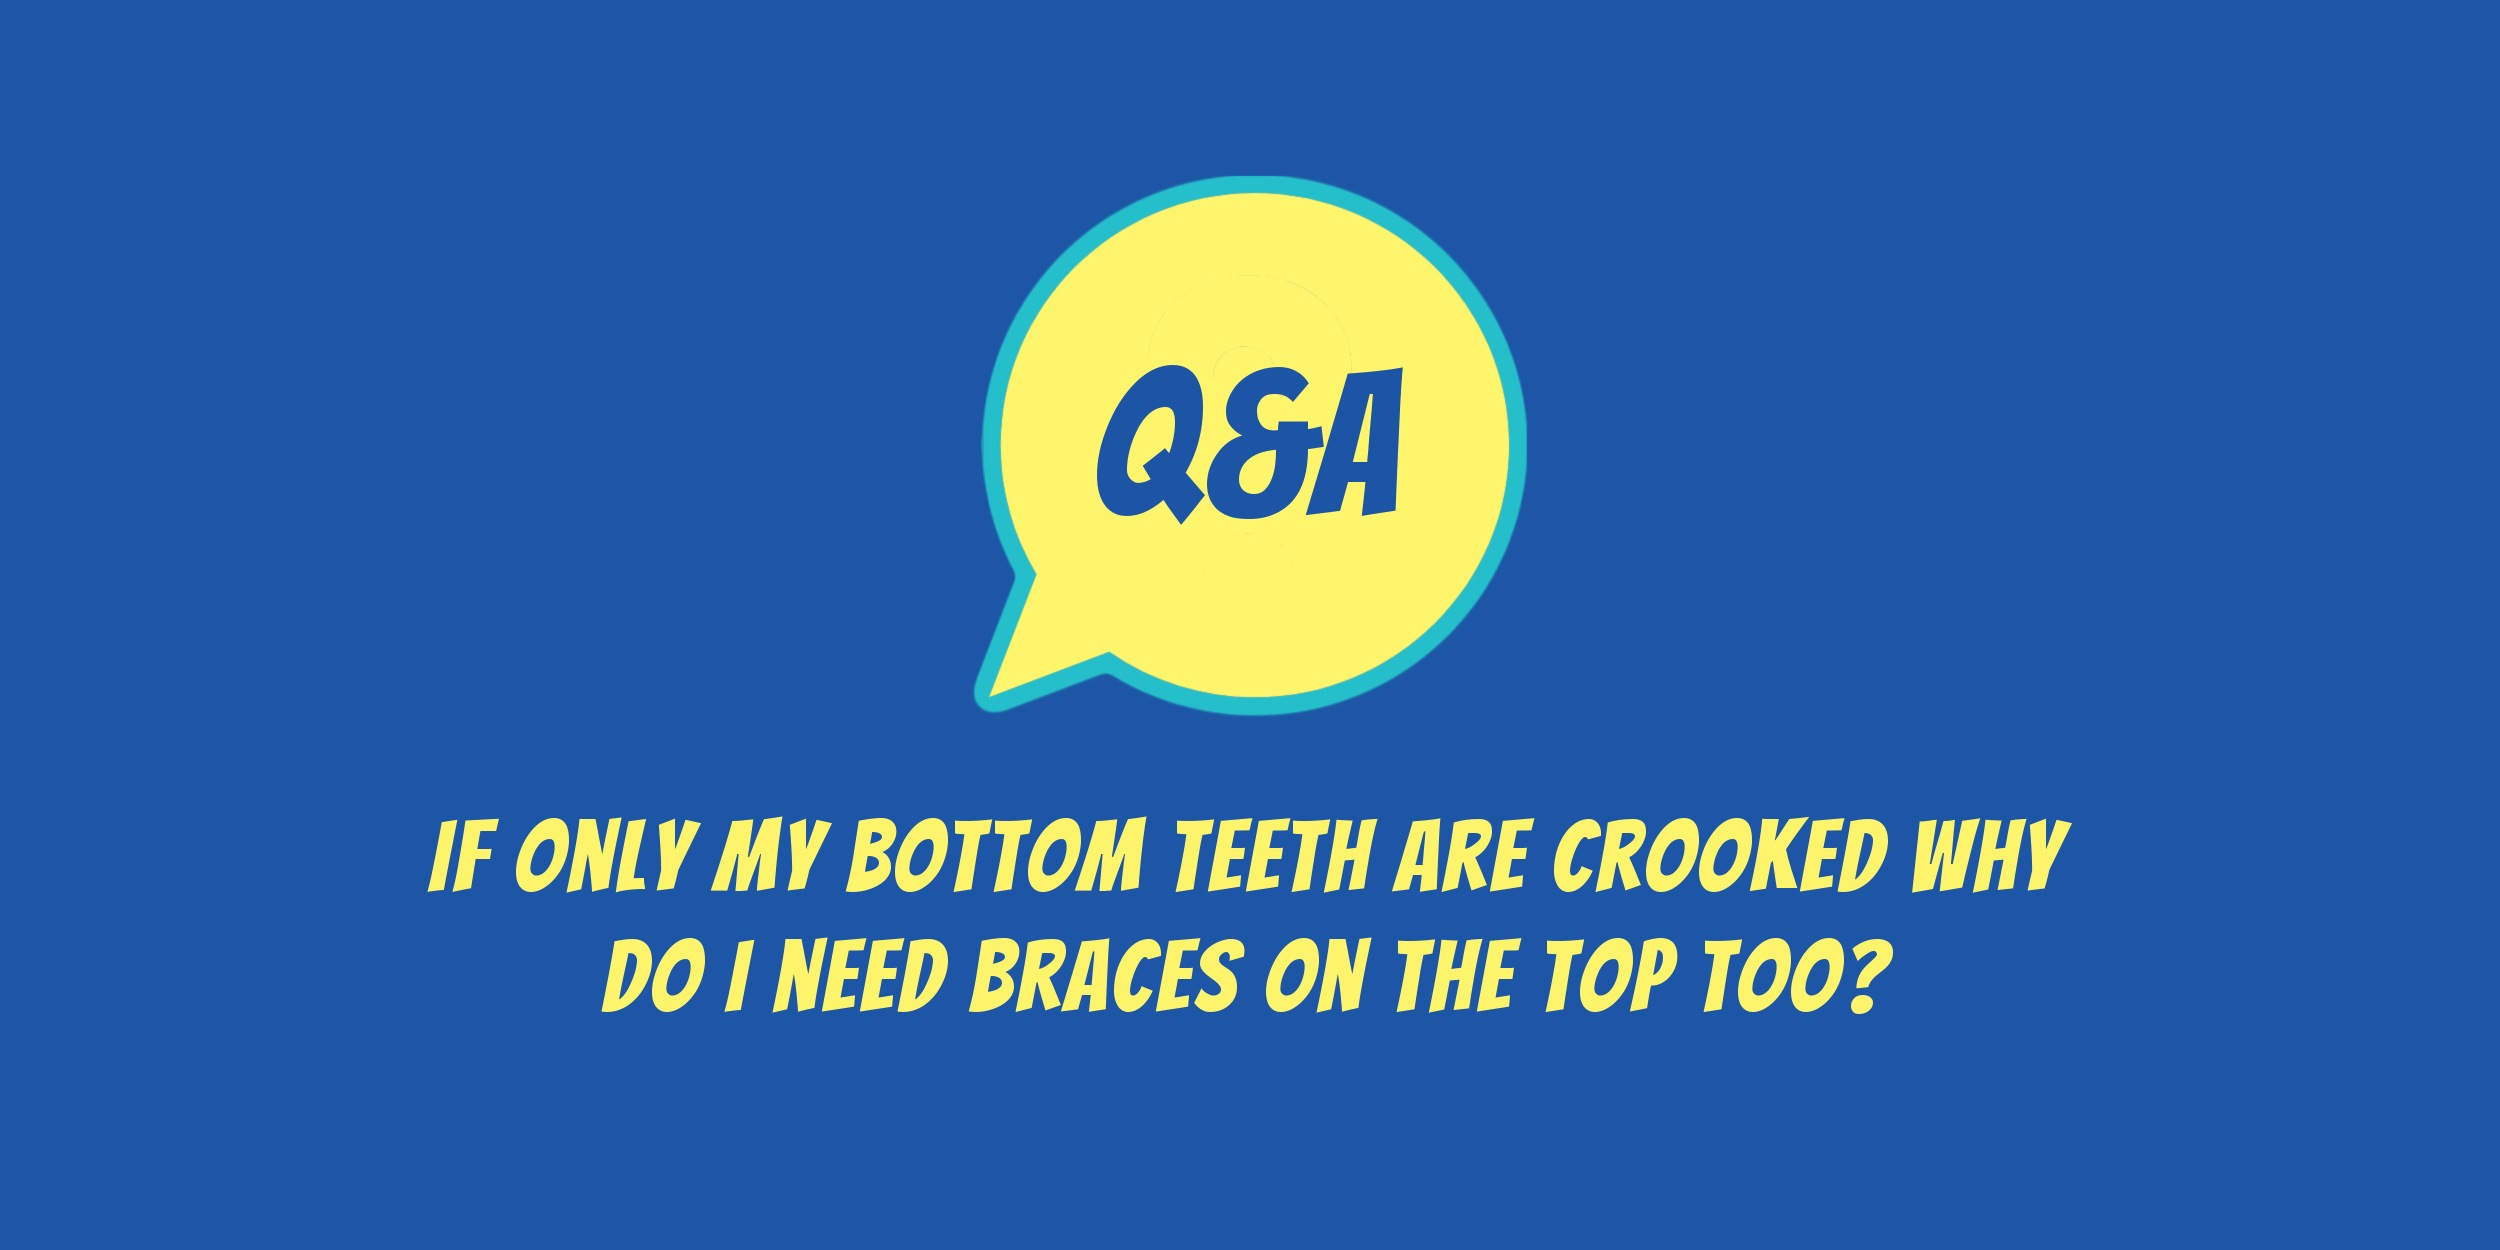 Q&A with Dr Antosz and Dr Vincelli: Only the bottom teeth are crooked